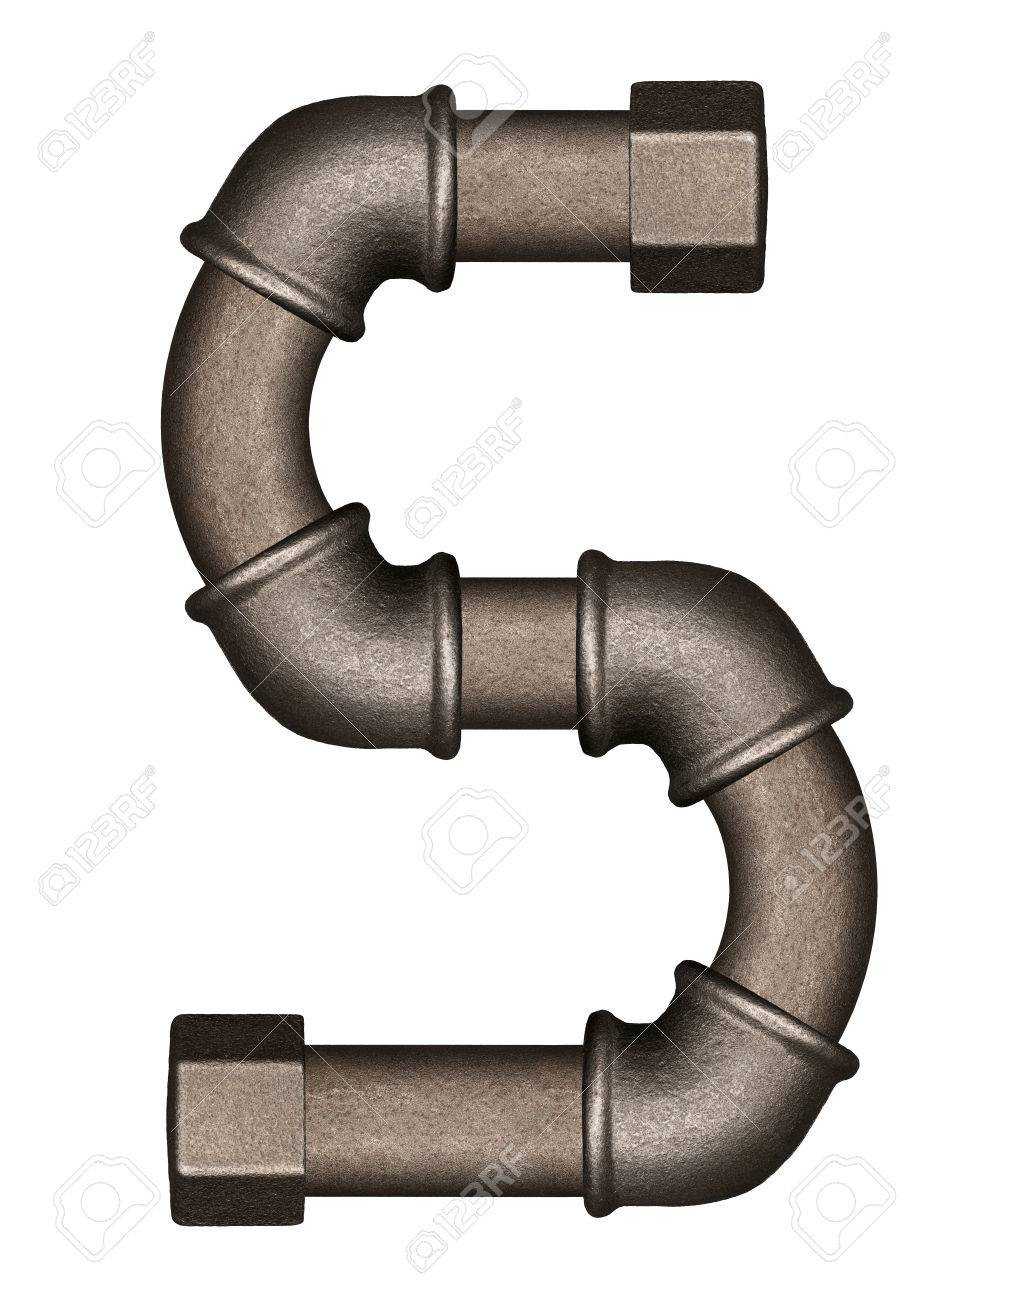 Industrial metal pipe alphabet letter S Stock Photo - 58738495  sc 1 st  123RF.com & Industrial Metal Pipe Alphabet Letter S Stock Photo Picture And ...